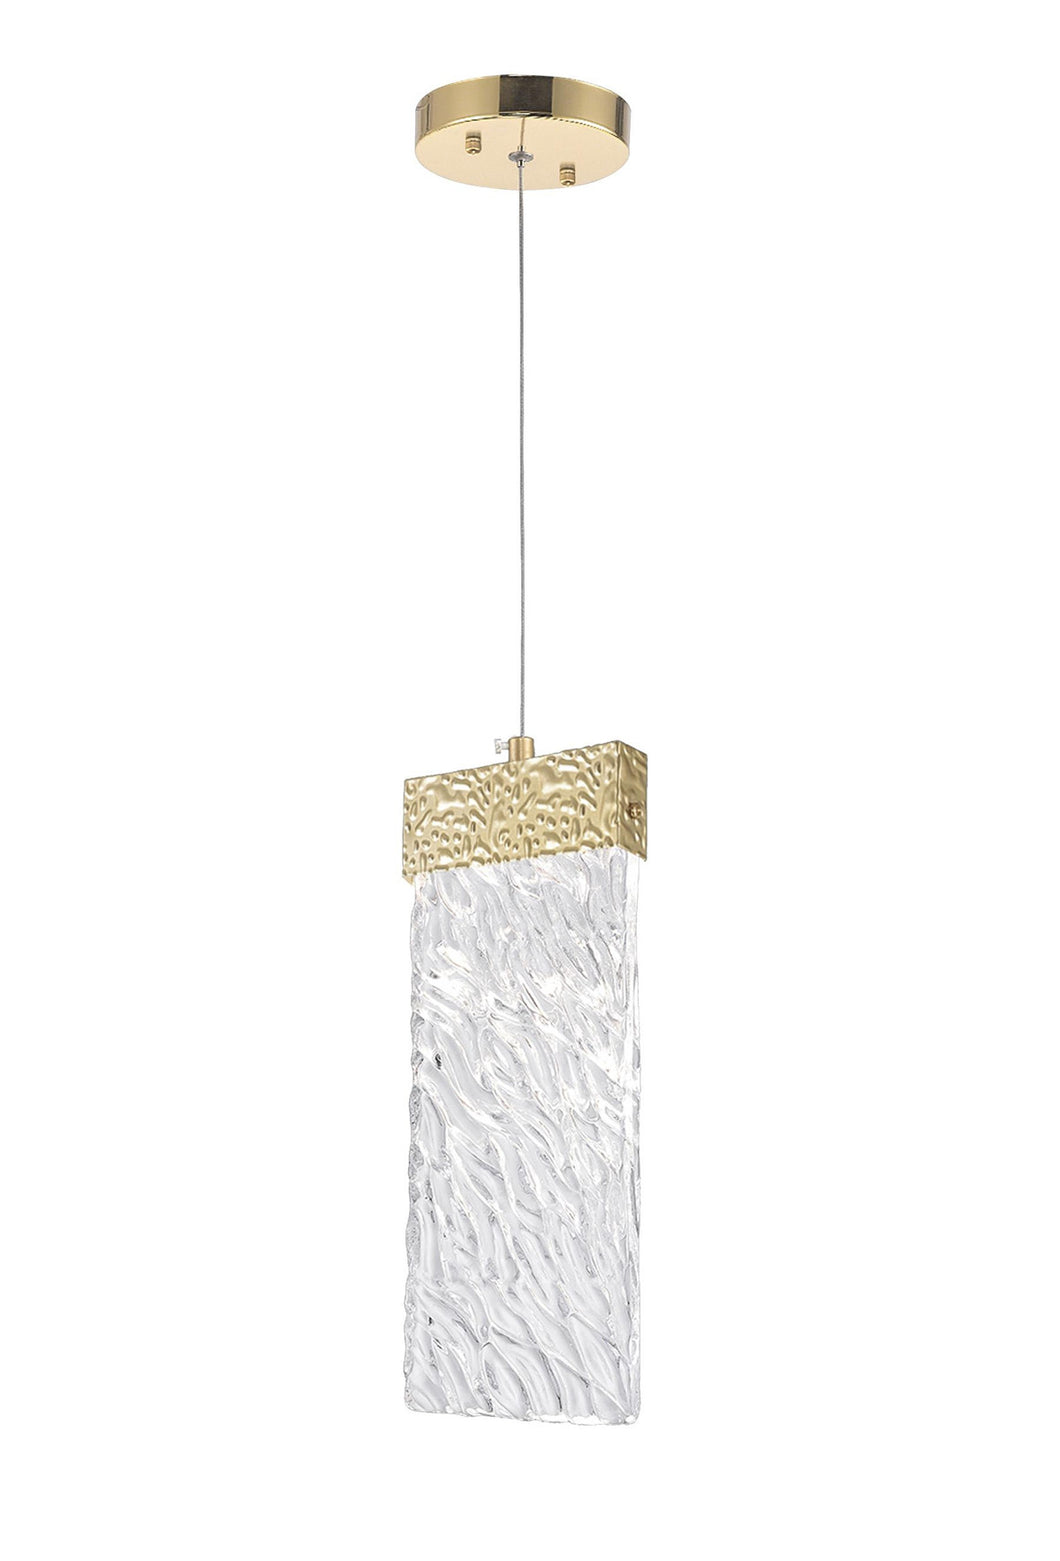 LED Pendant with Gold Leaf Finish